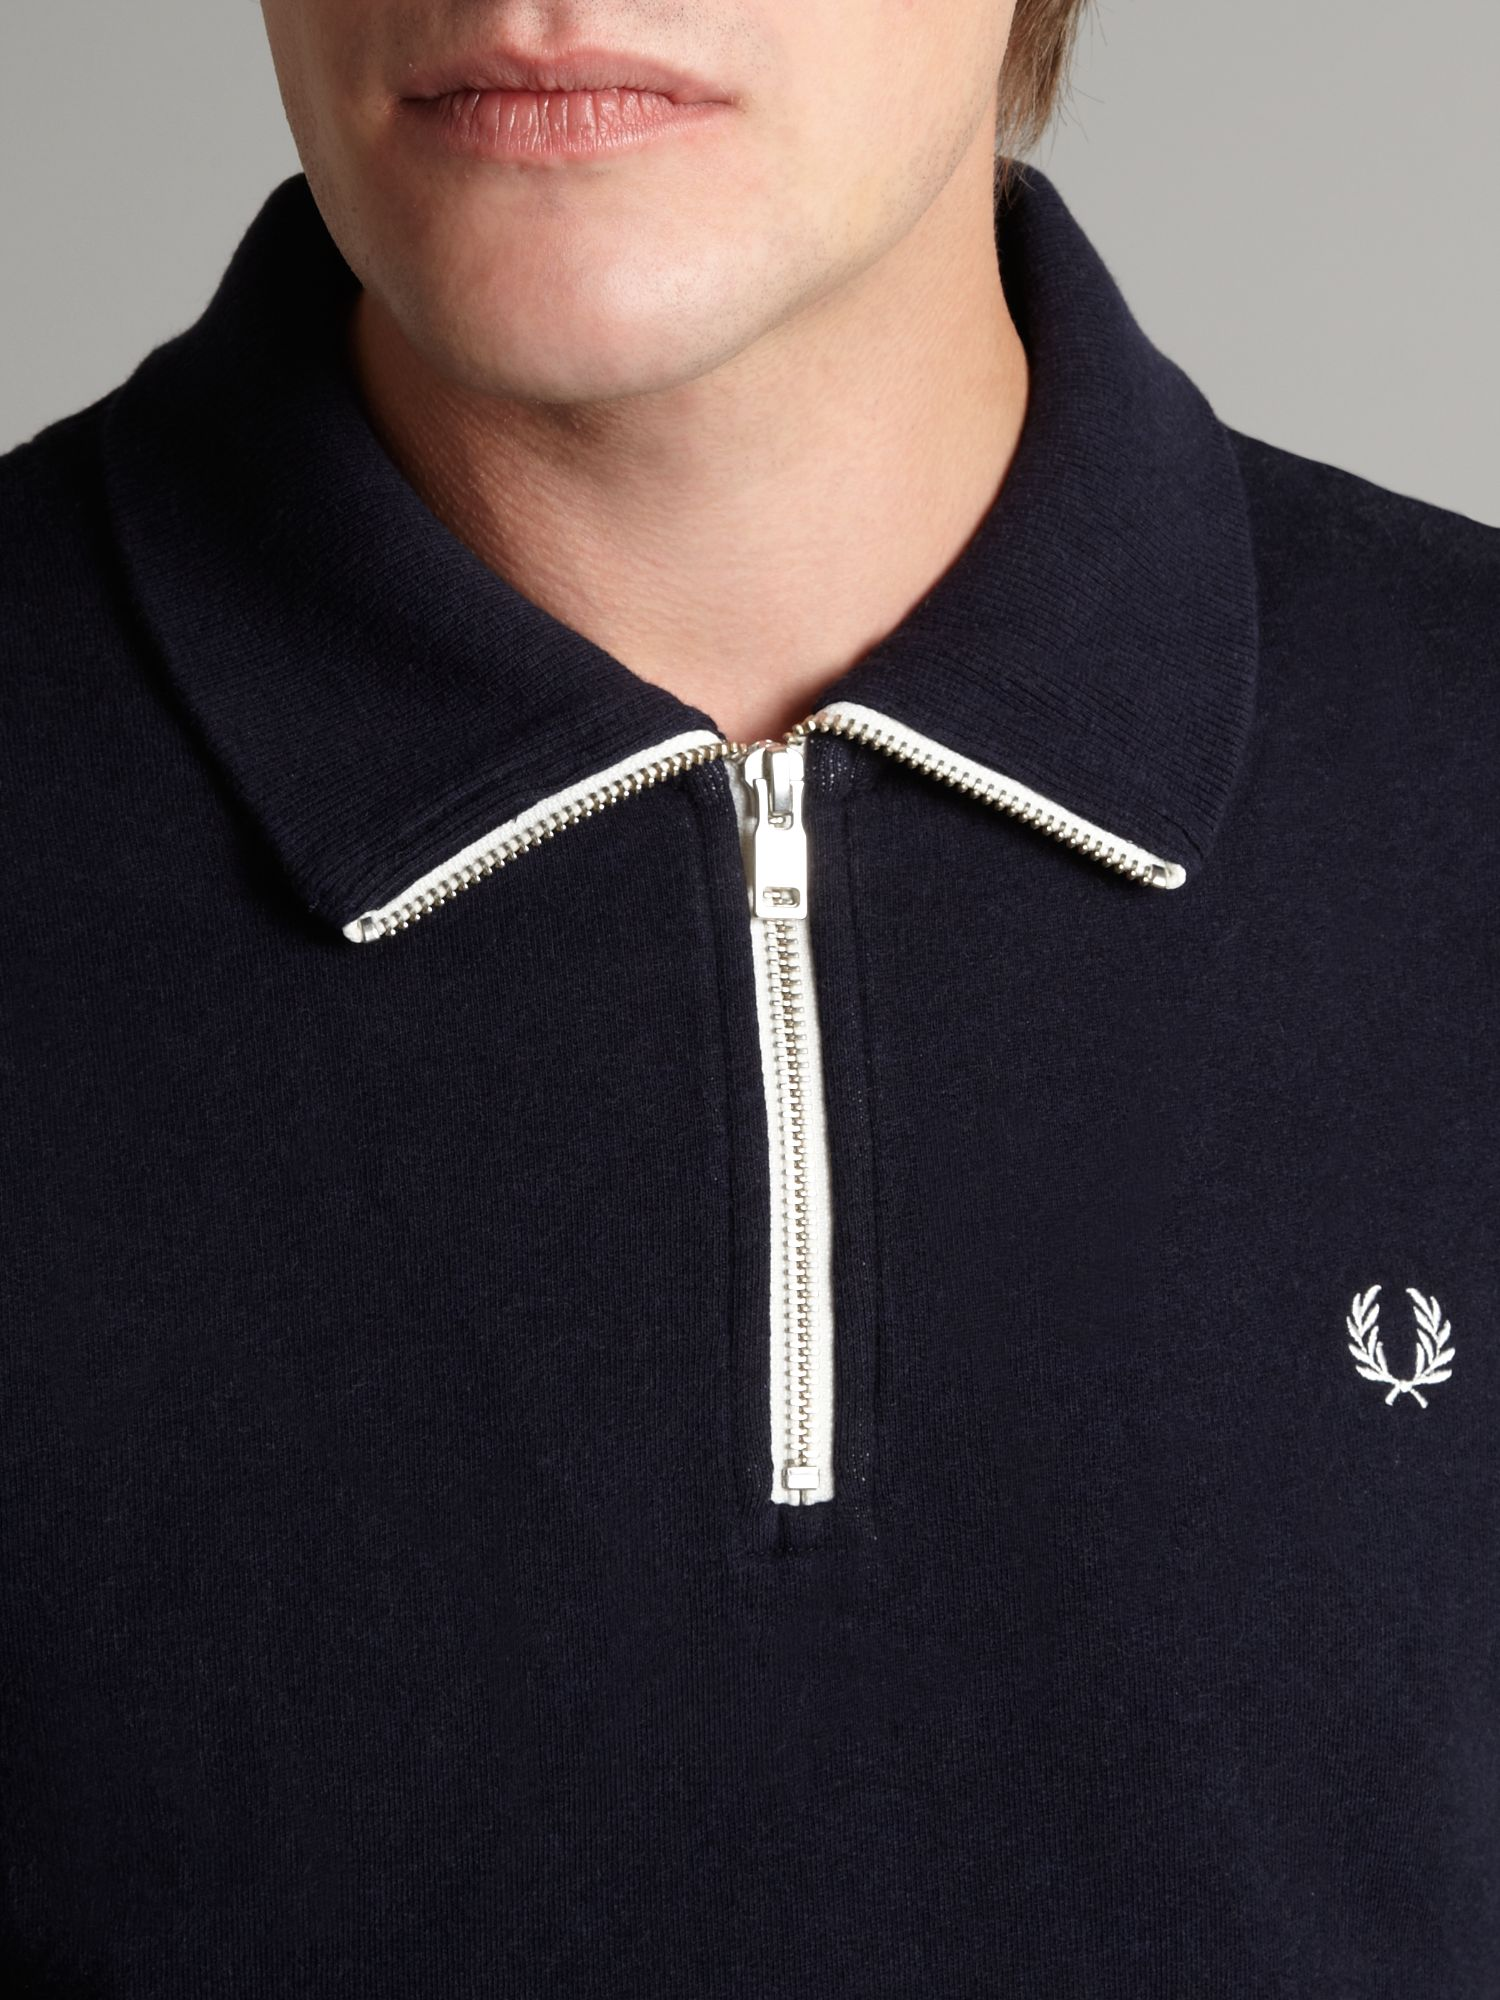 Fred perry - Vintage Etsy UK